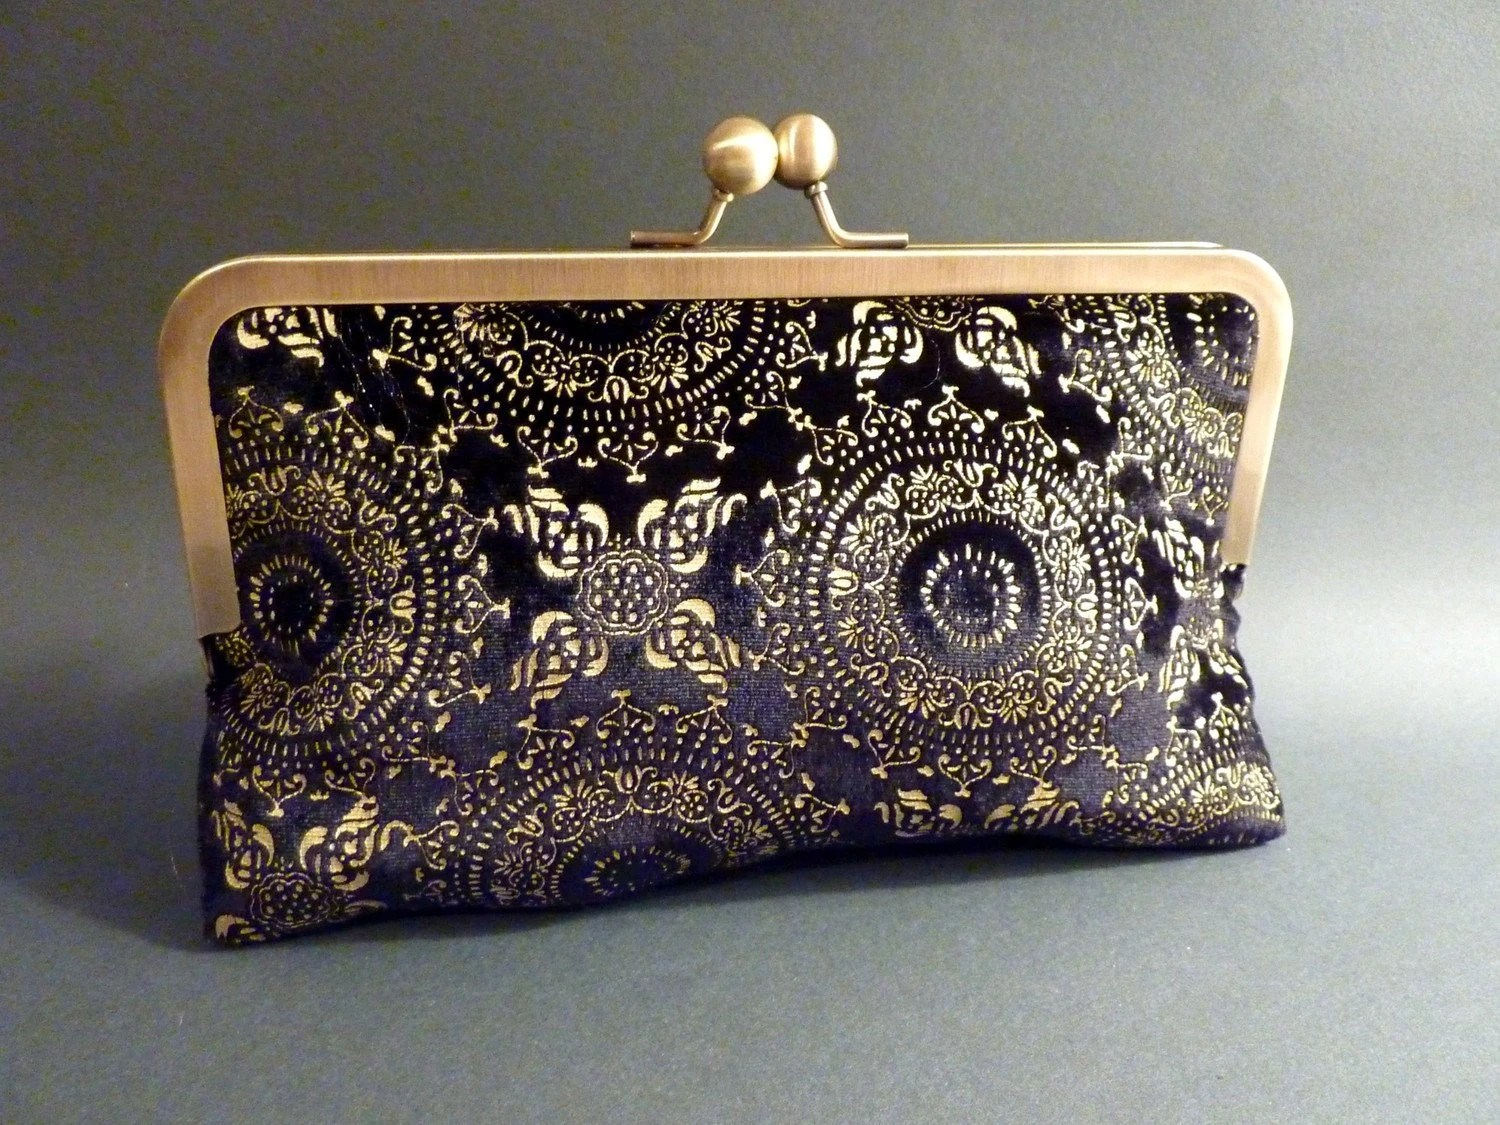 Black Velvet and Gold Clutch Bridal Bridesmaid Holiday Christmas New Years Eve - BelleJouJou